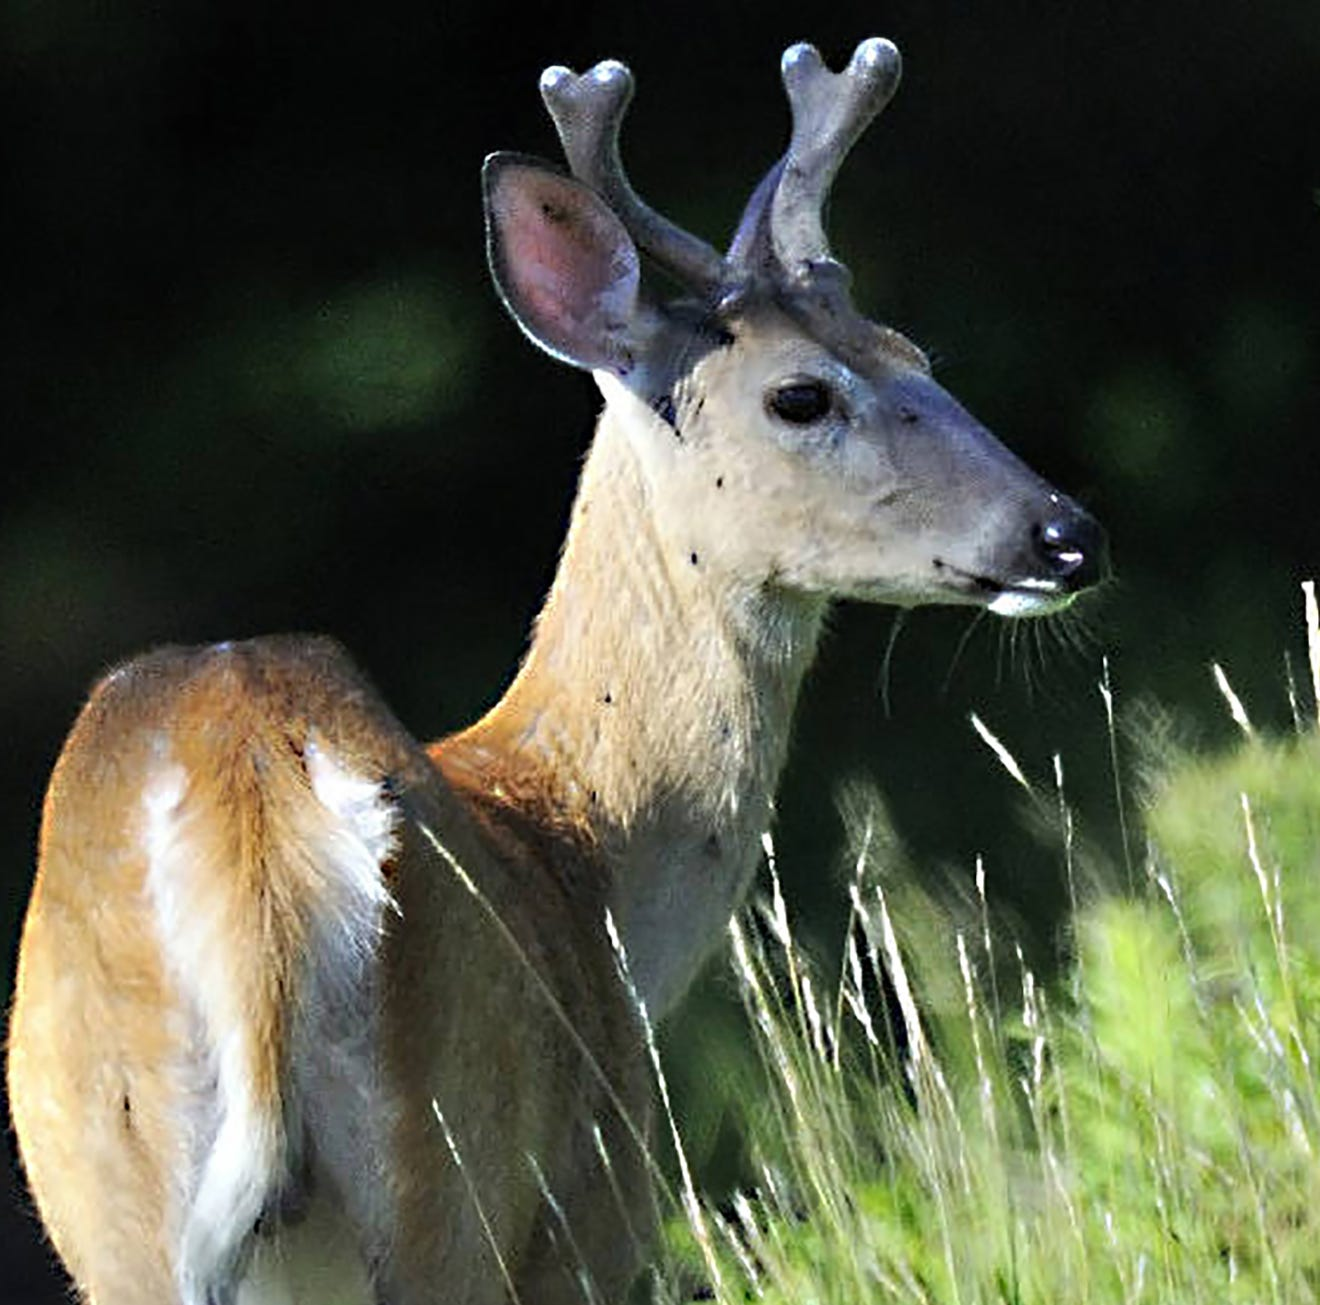 Details emerge on Pontotoc County CWD-positive deer